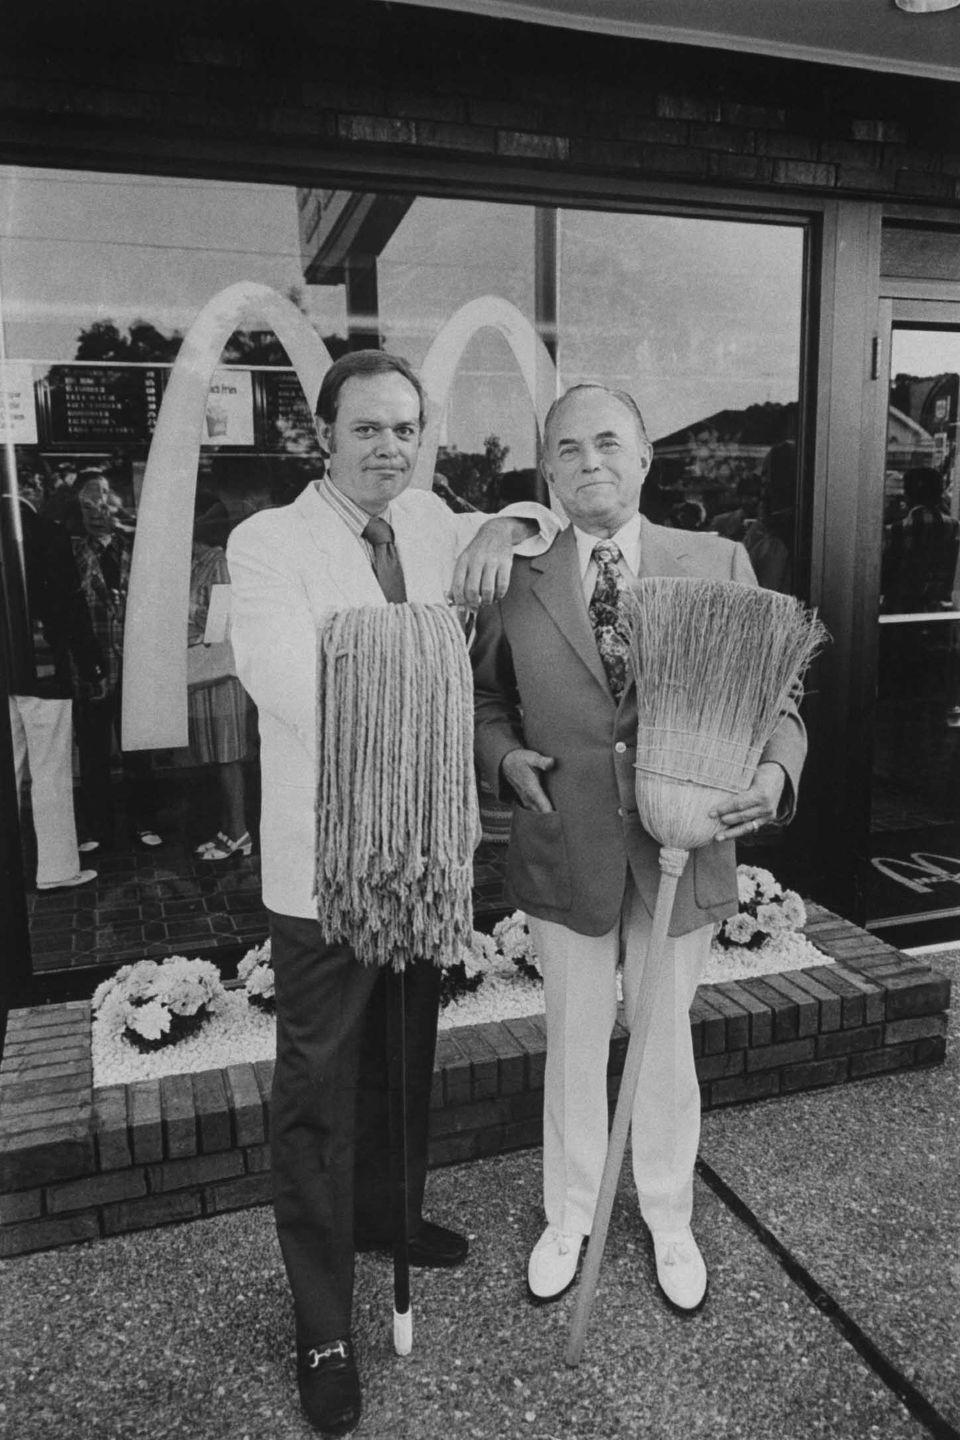 <p>President Frederick Turner and CEO Raymond Kroc posing in celebration of the opening of McDonald's 2,500th location, which was located in a suburban shopping center in Hickory Hills, Illinois. Not sure why they're holding a broom and mop, but OK!</p>